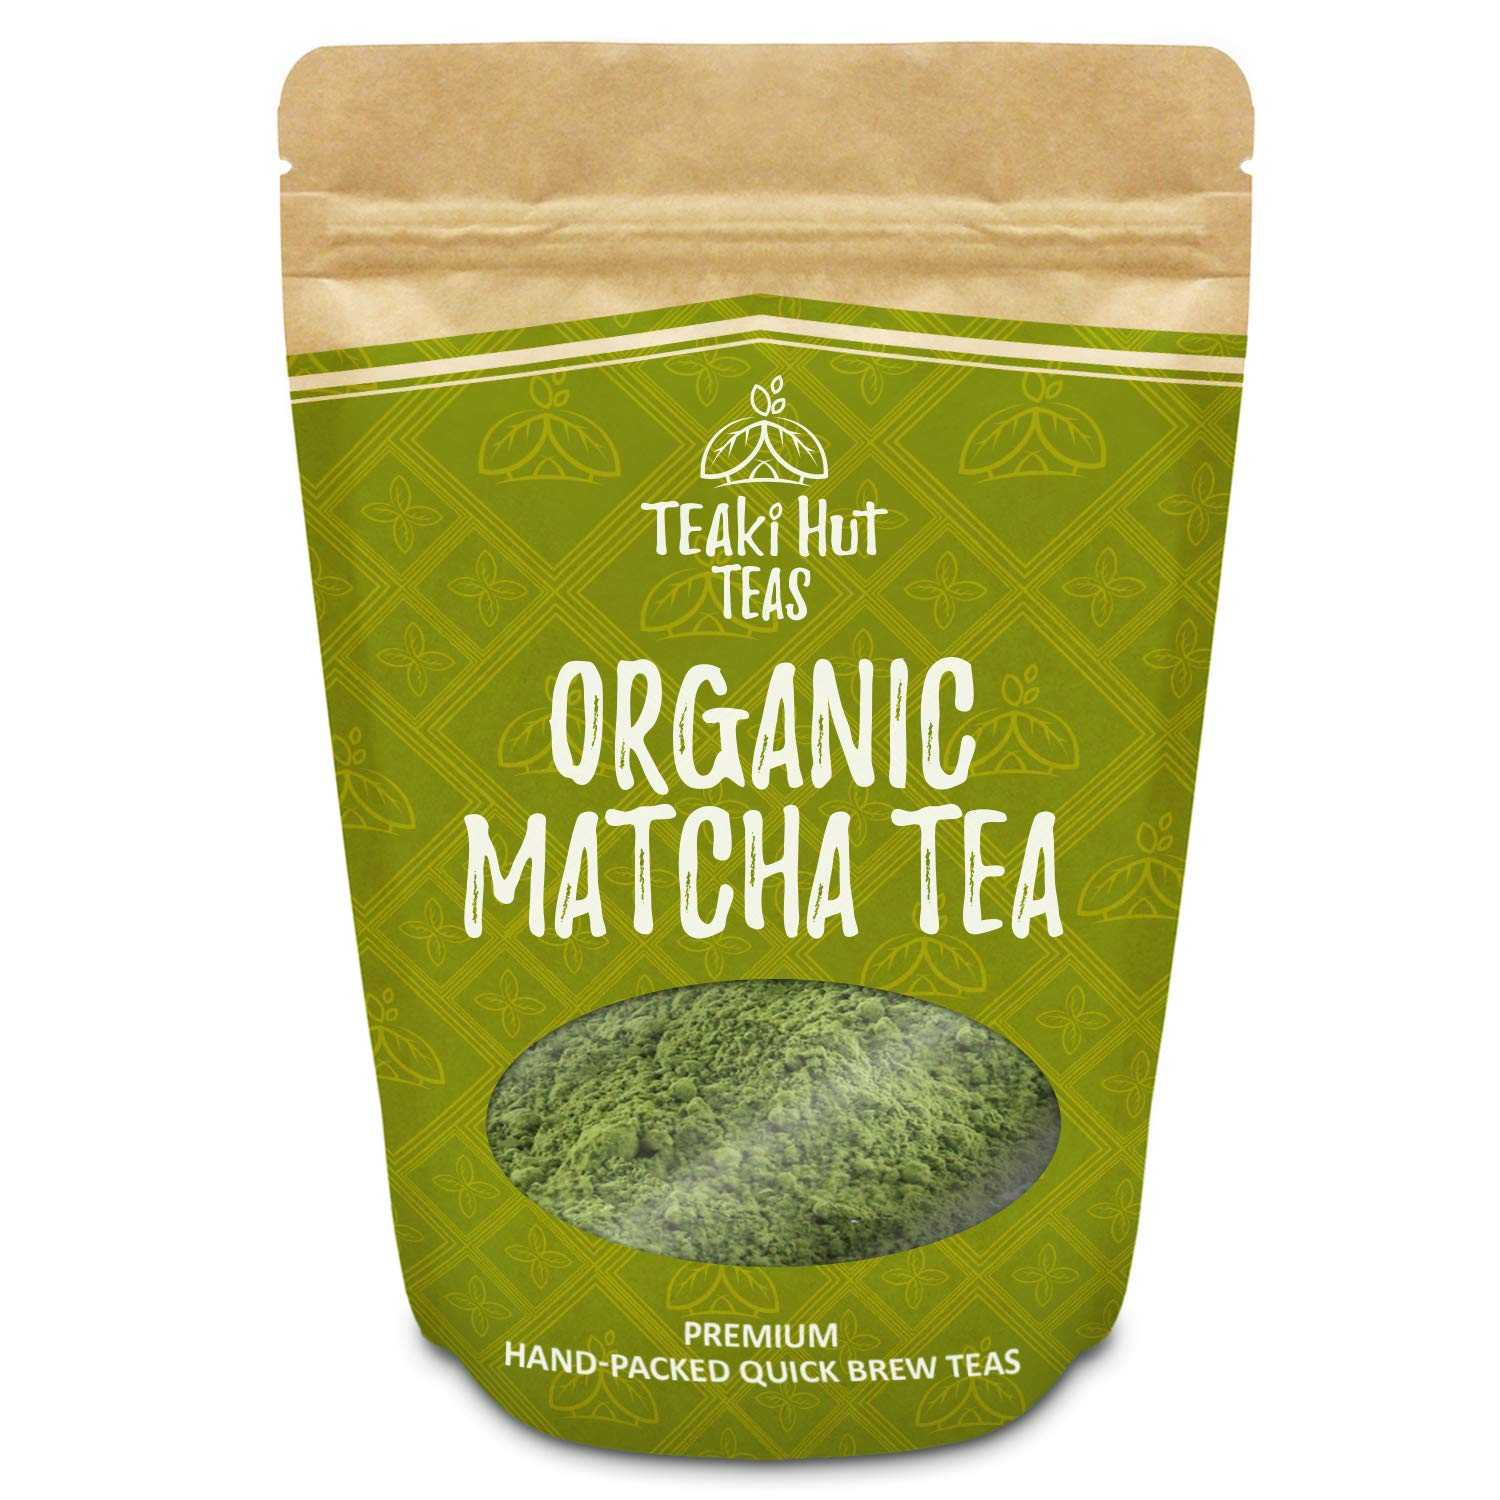 Organic Matcha Green Tea Powder Culinary Grade 2 oz (50 Servings) - Excellent Weight Loss Benefits - More Antioxidants than Green Tea Bags- Great for making Matcha Tea, smoothies or Lattes